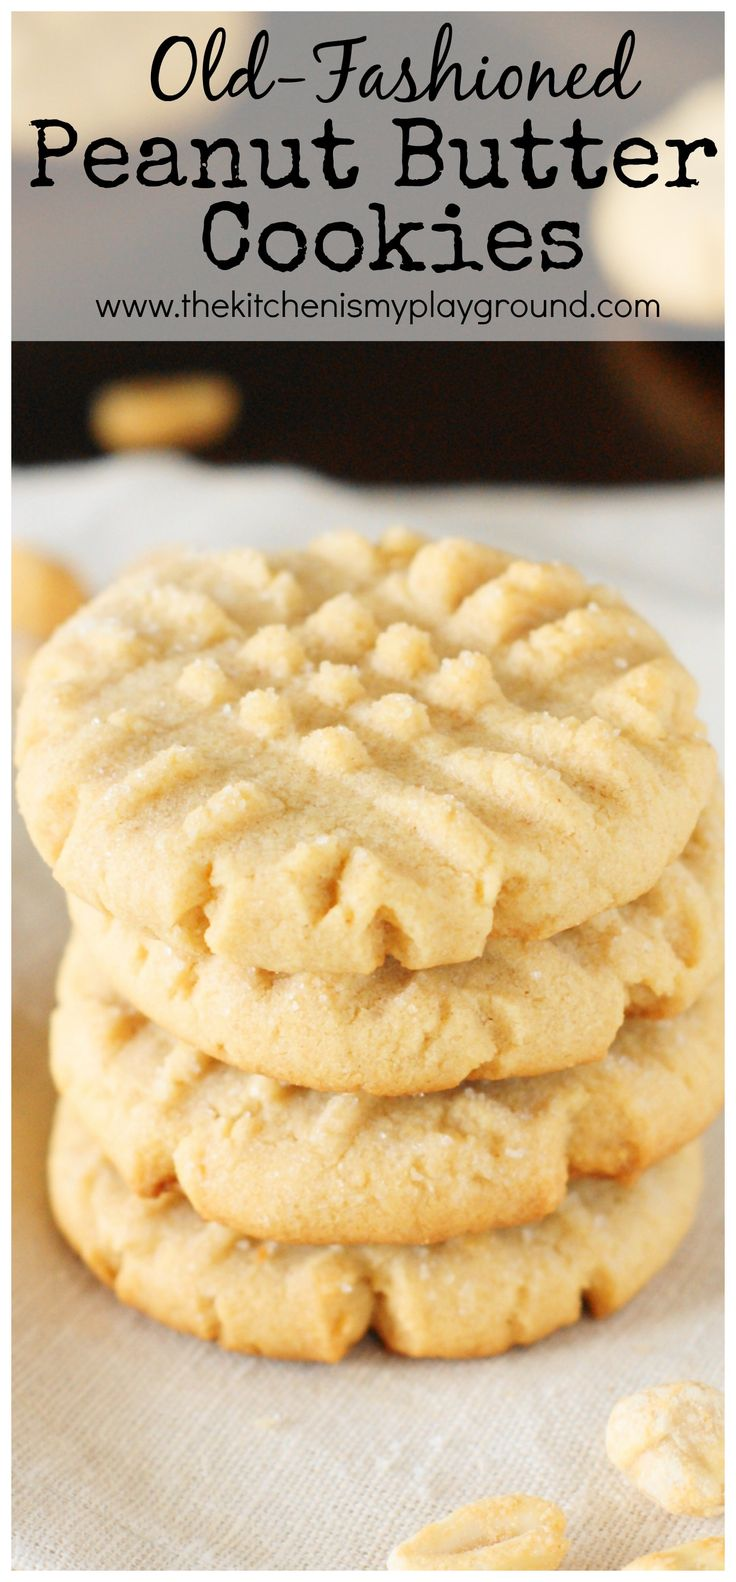 Old-Fashioned Peanut Butter Cookies ~ straight from Grandma's recipe box. These are the stuff childhood cookie memories are made of!   www.thekitchenism...